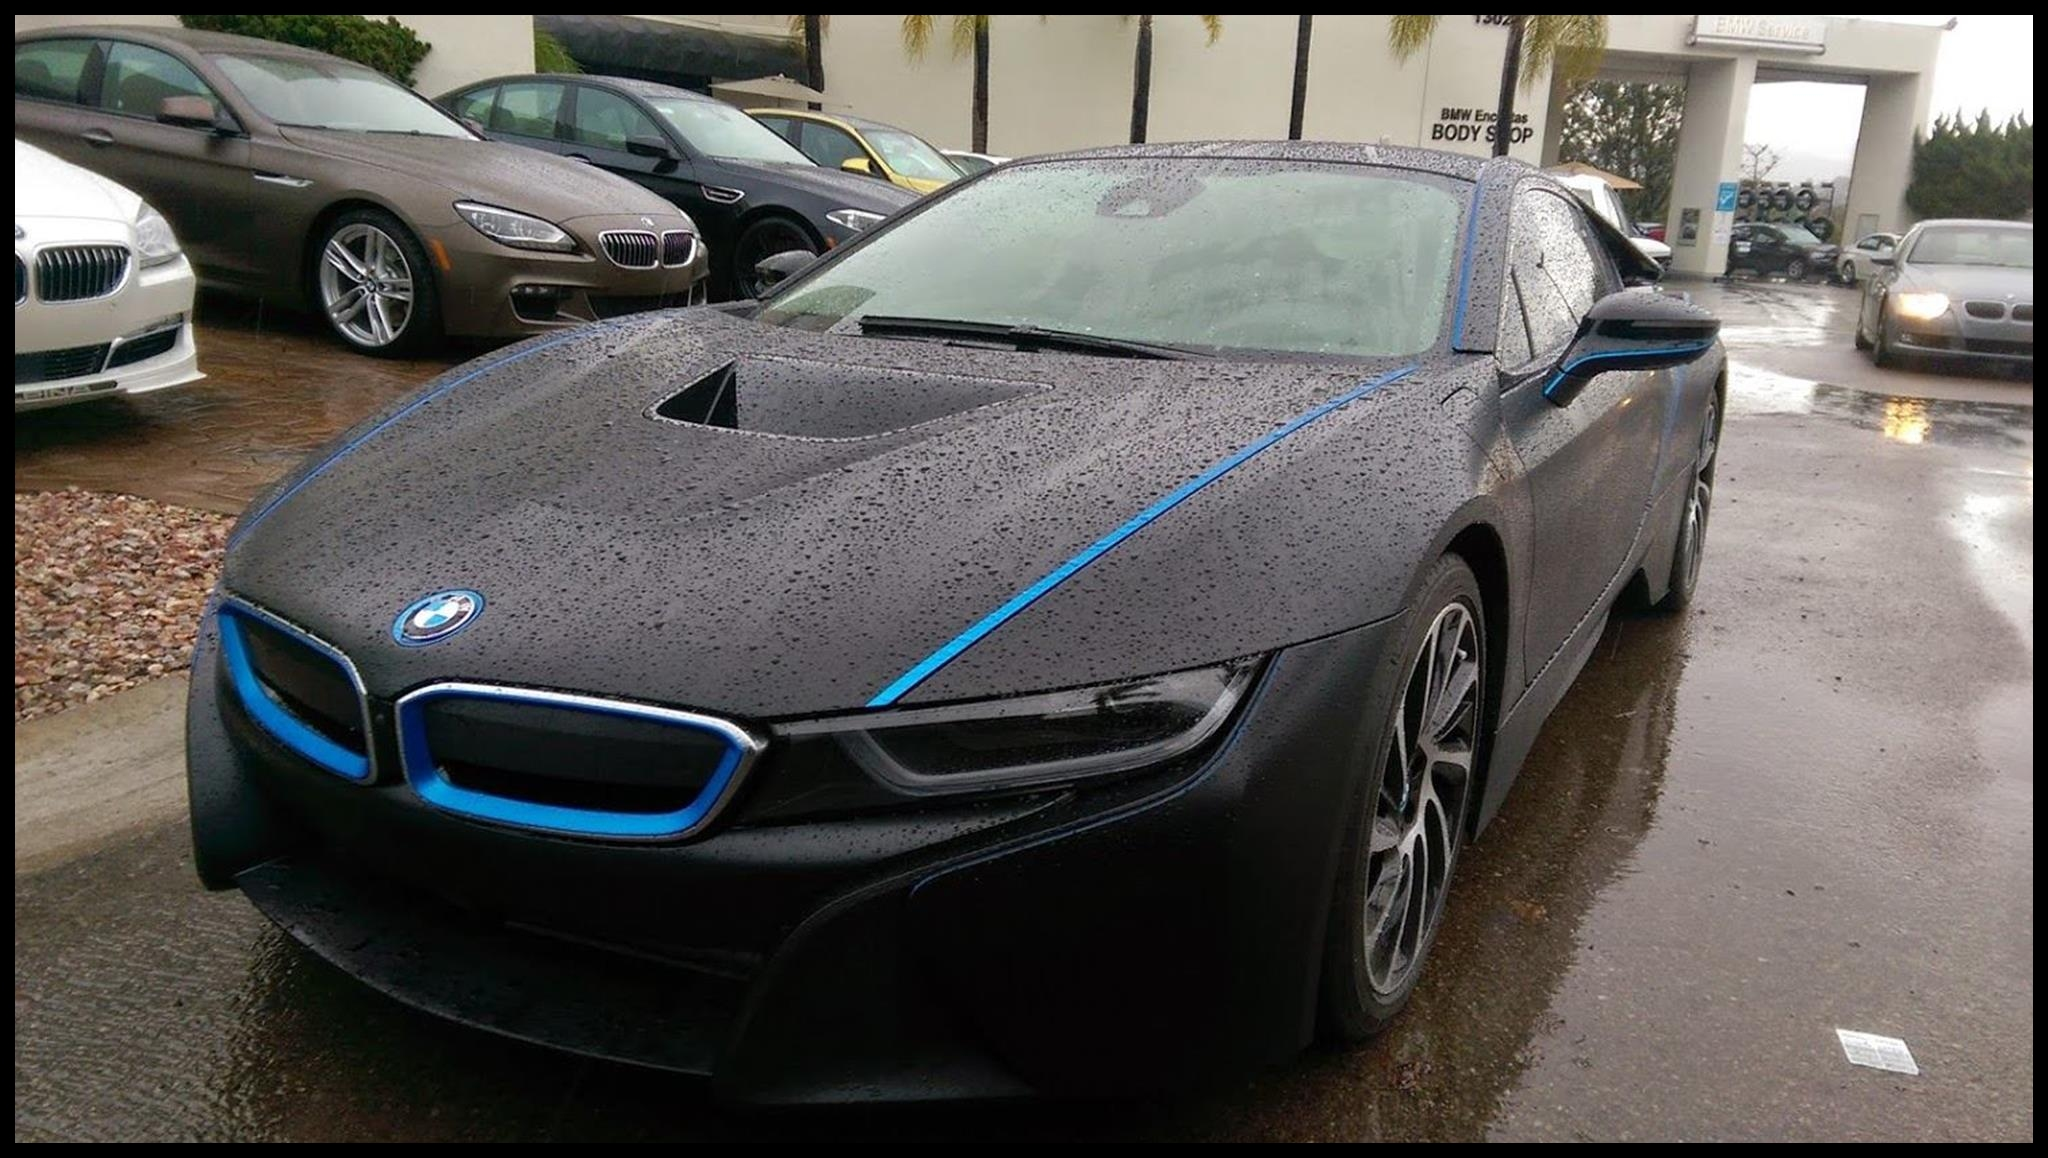 BMW i8 Wrapped in Black Wrapped in black